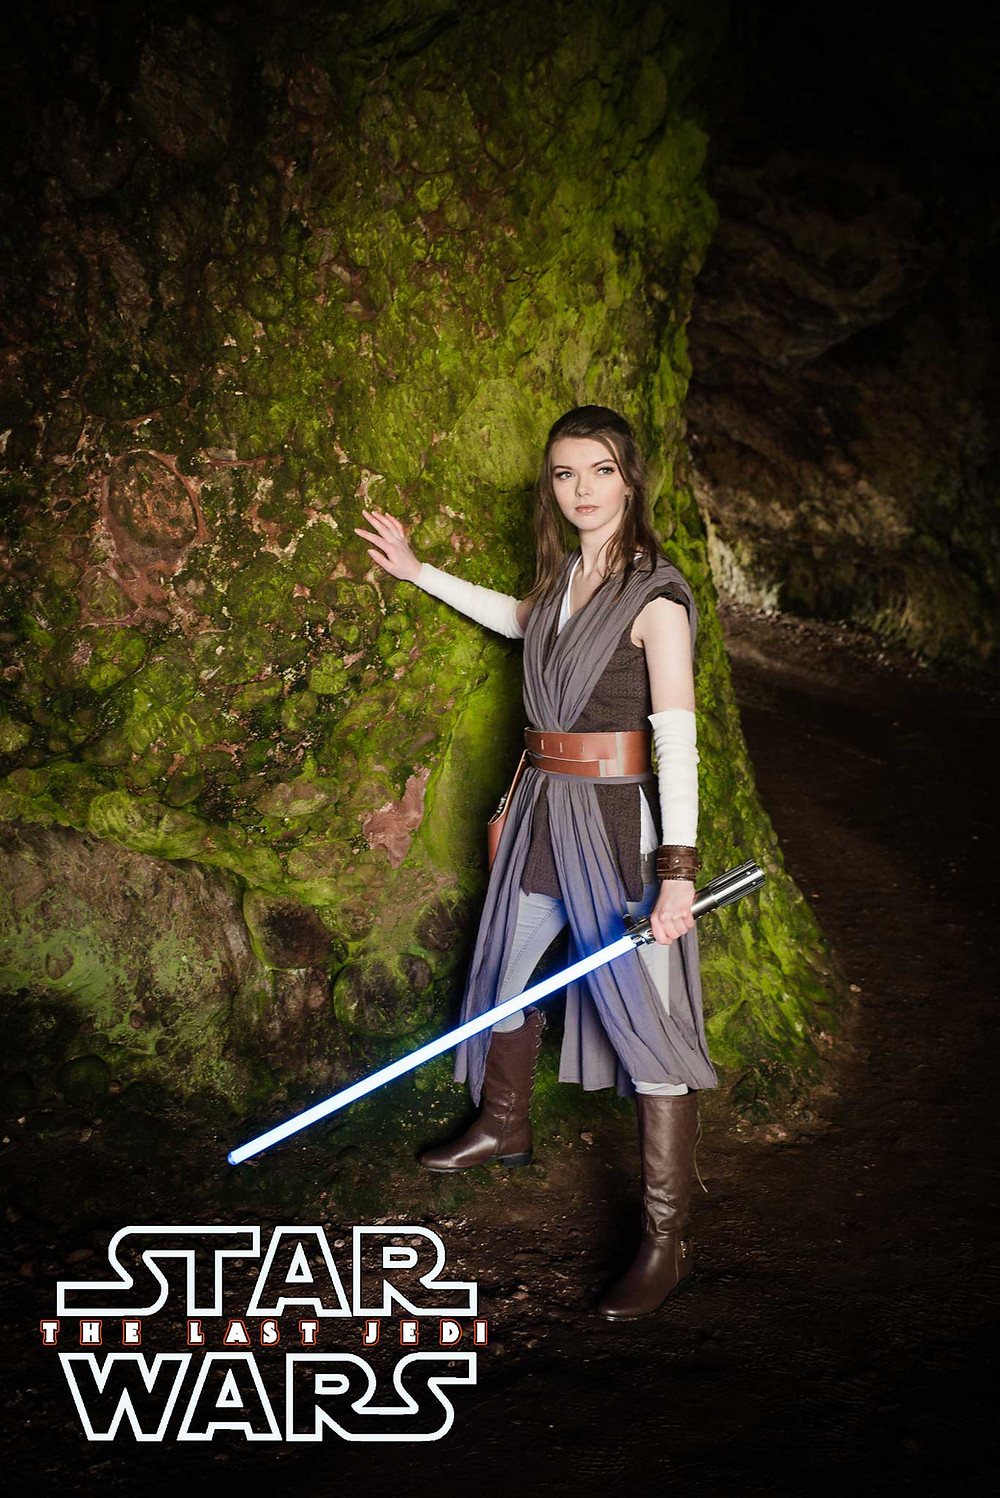 Rey cosplayer wielding lightsaber in cuhendun caves antrim coast ireland